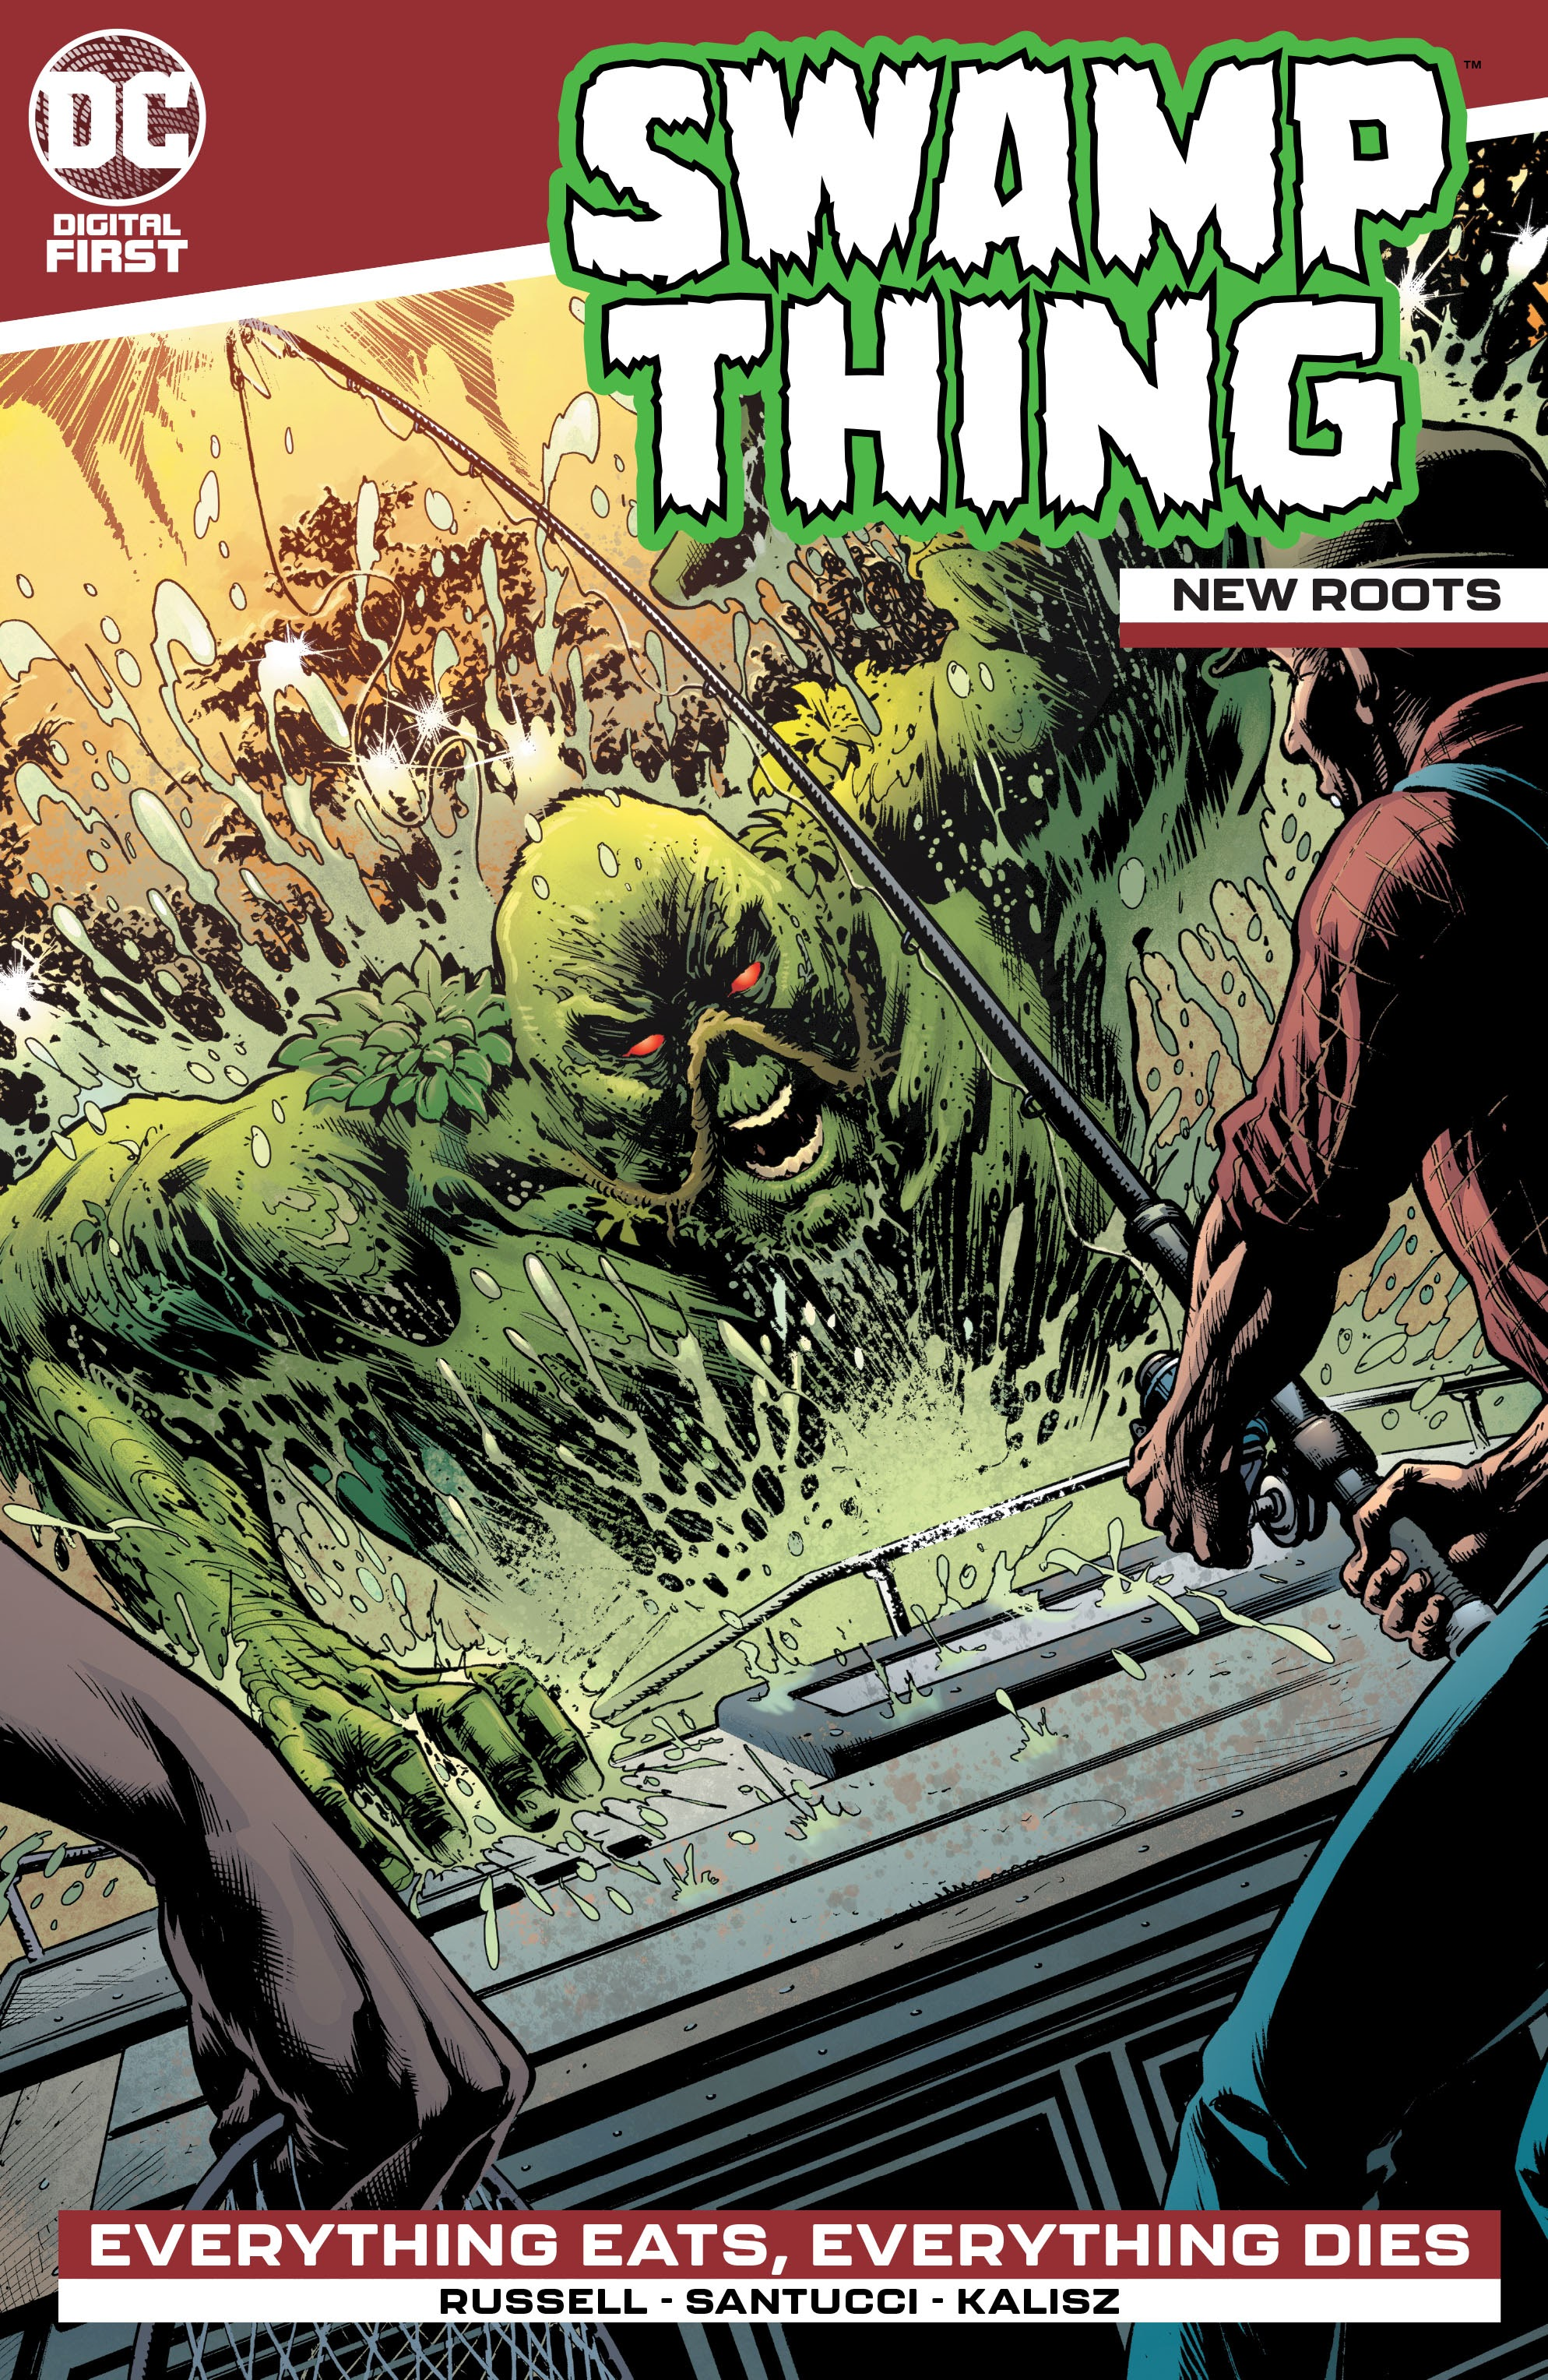 Swamp Thing: New Roots Vol 1 2 (Digital)